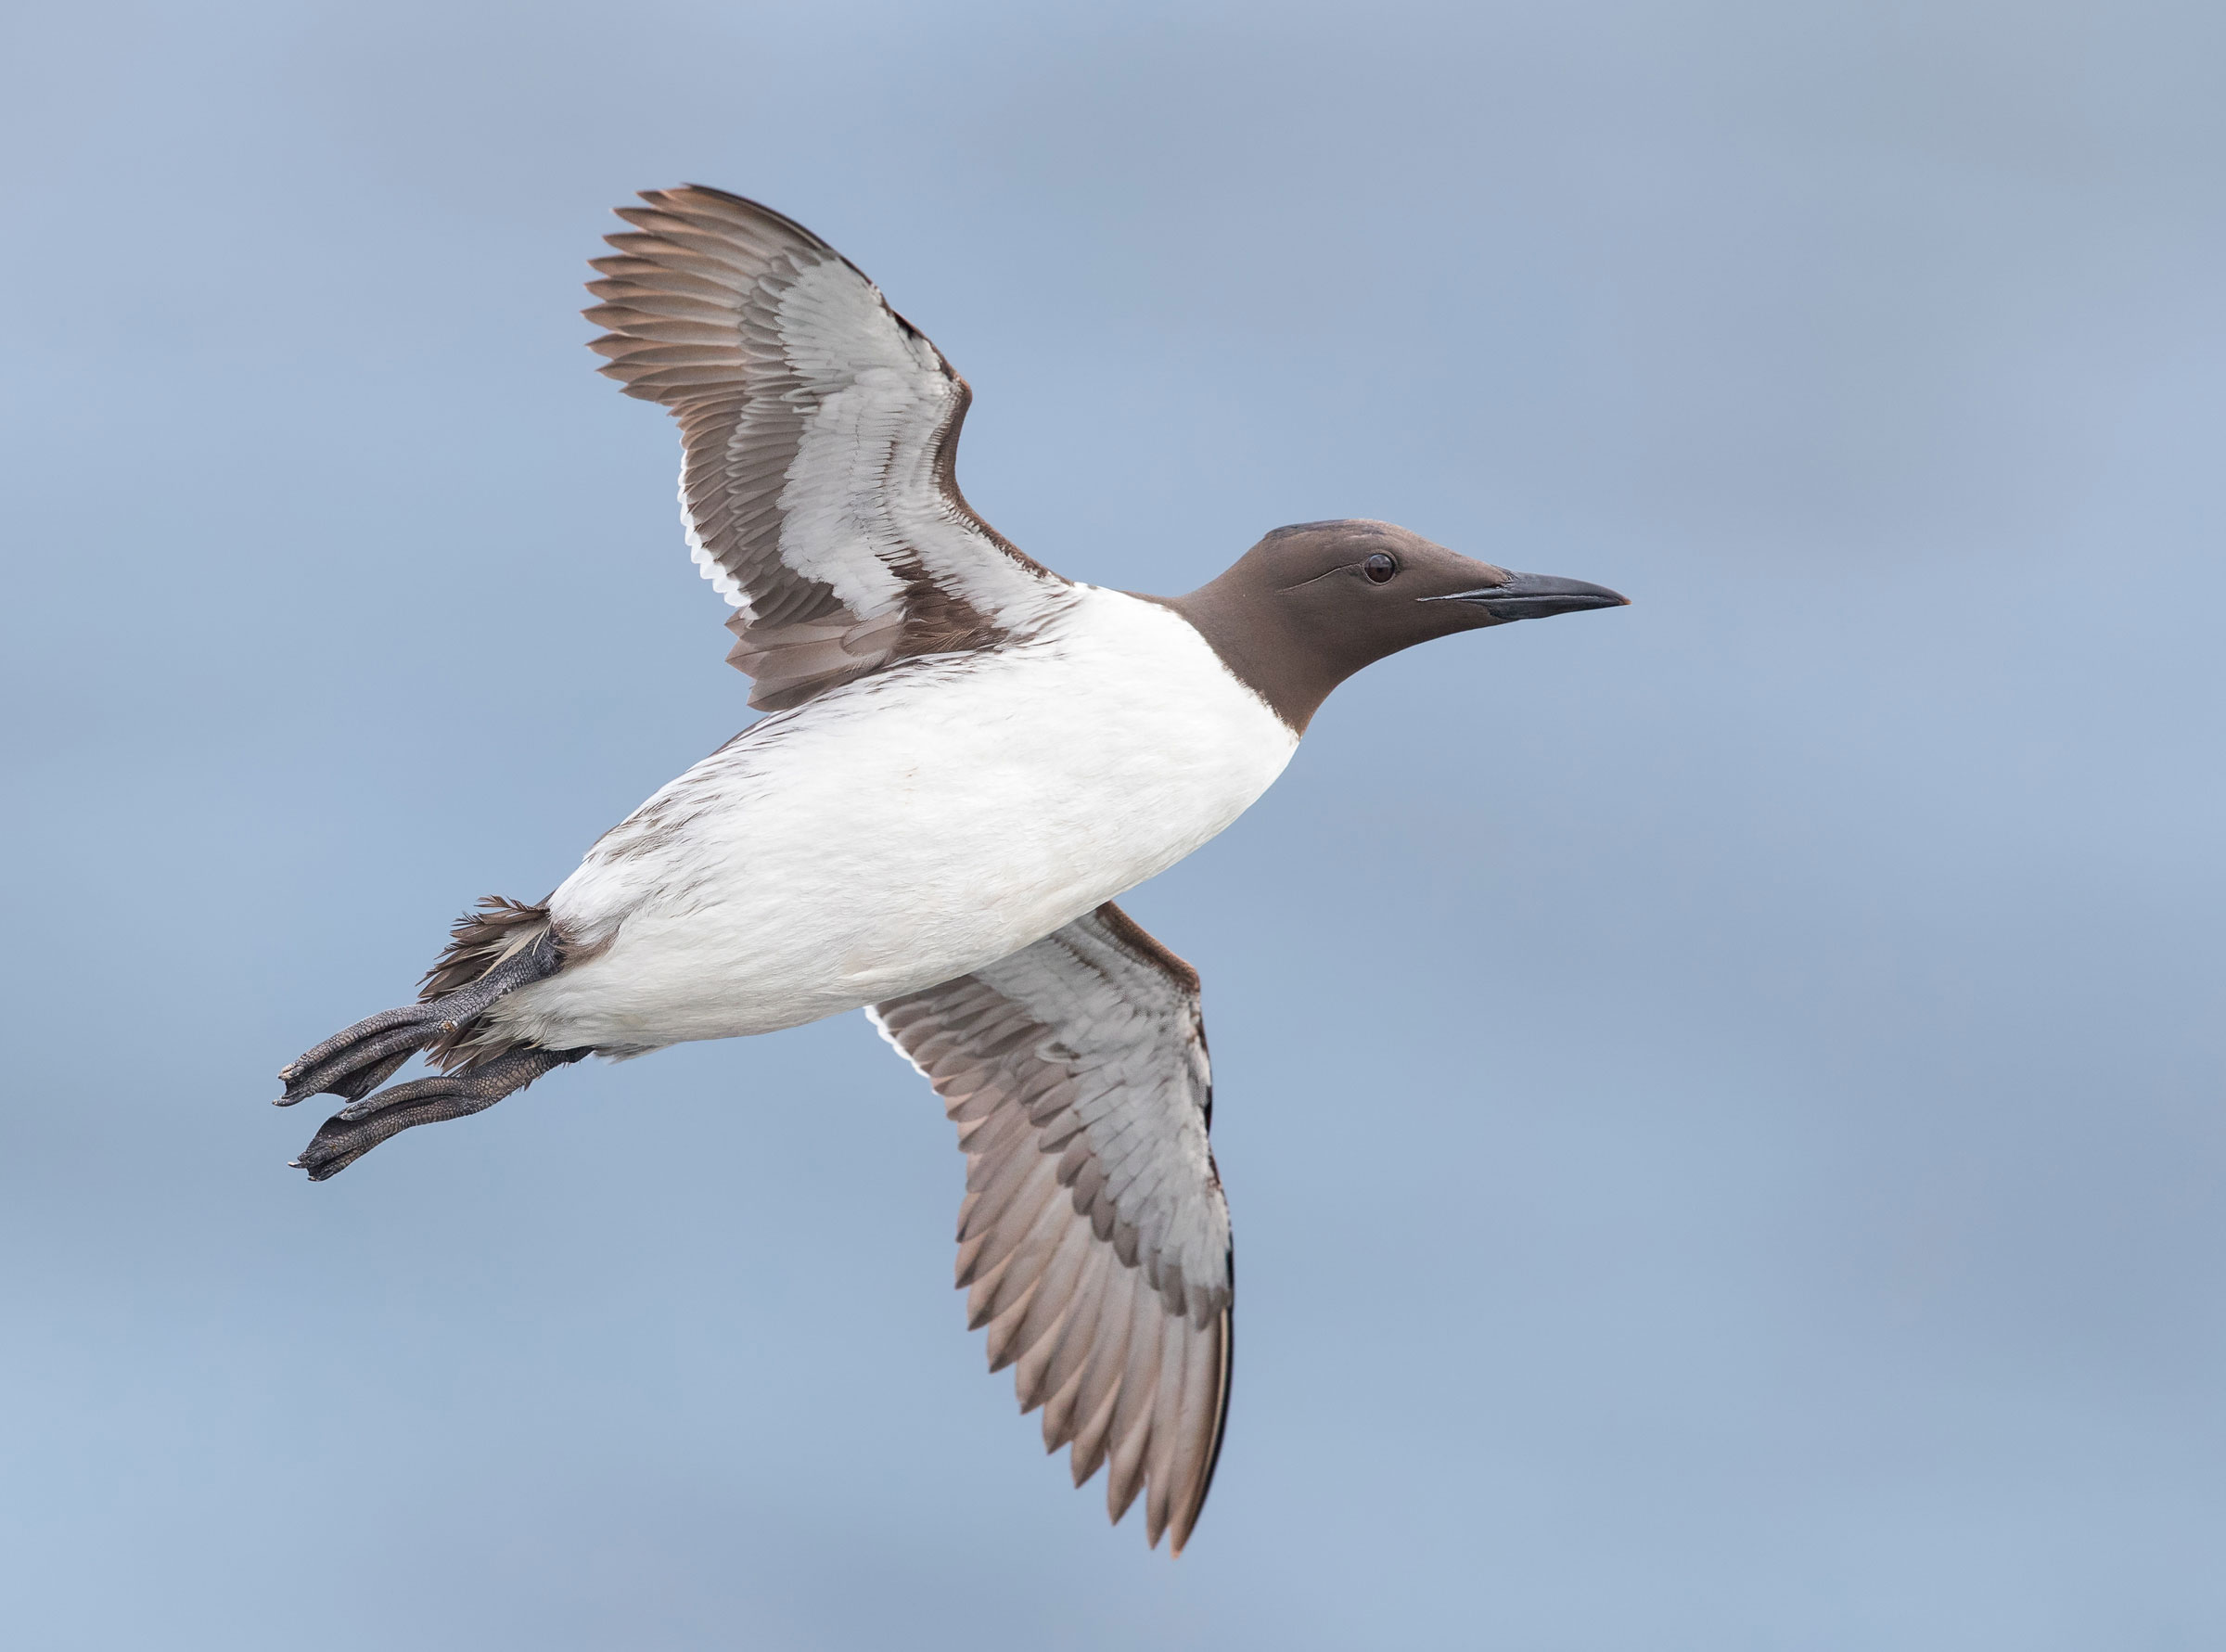 Capturing flying alcids, such as this Common Murre, is an allure of Grímsey Island. Michael Milicia